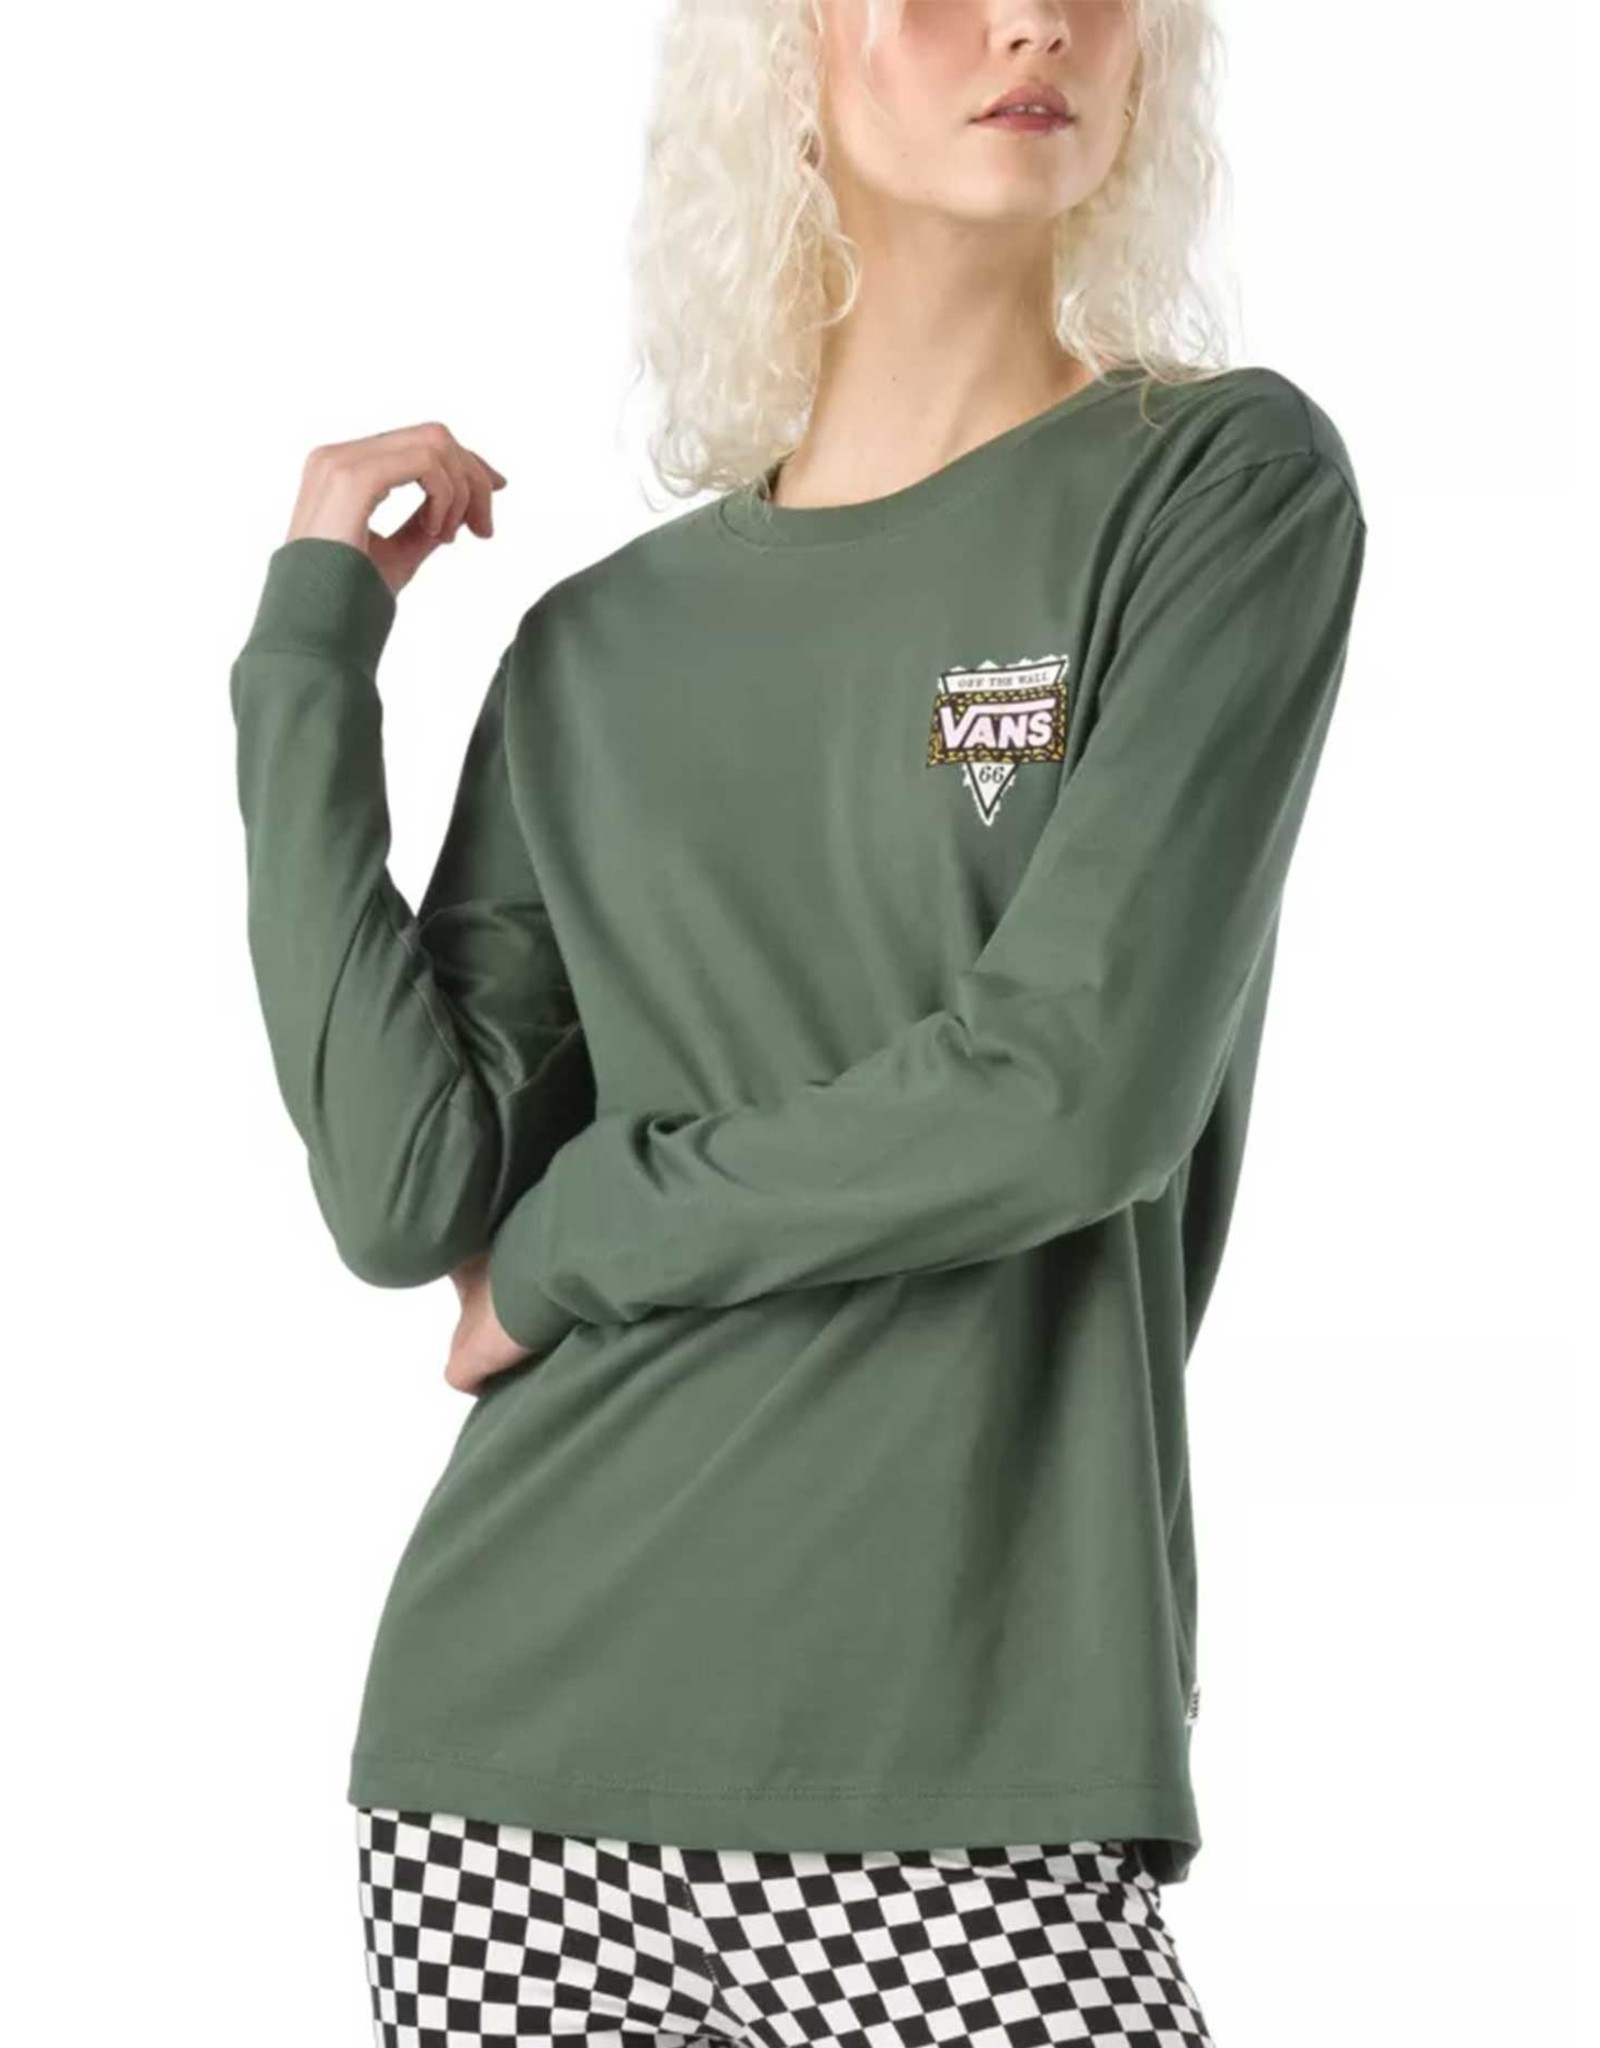 Vans First Stitches Long Sleeve